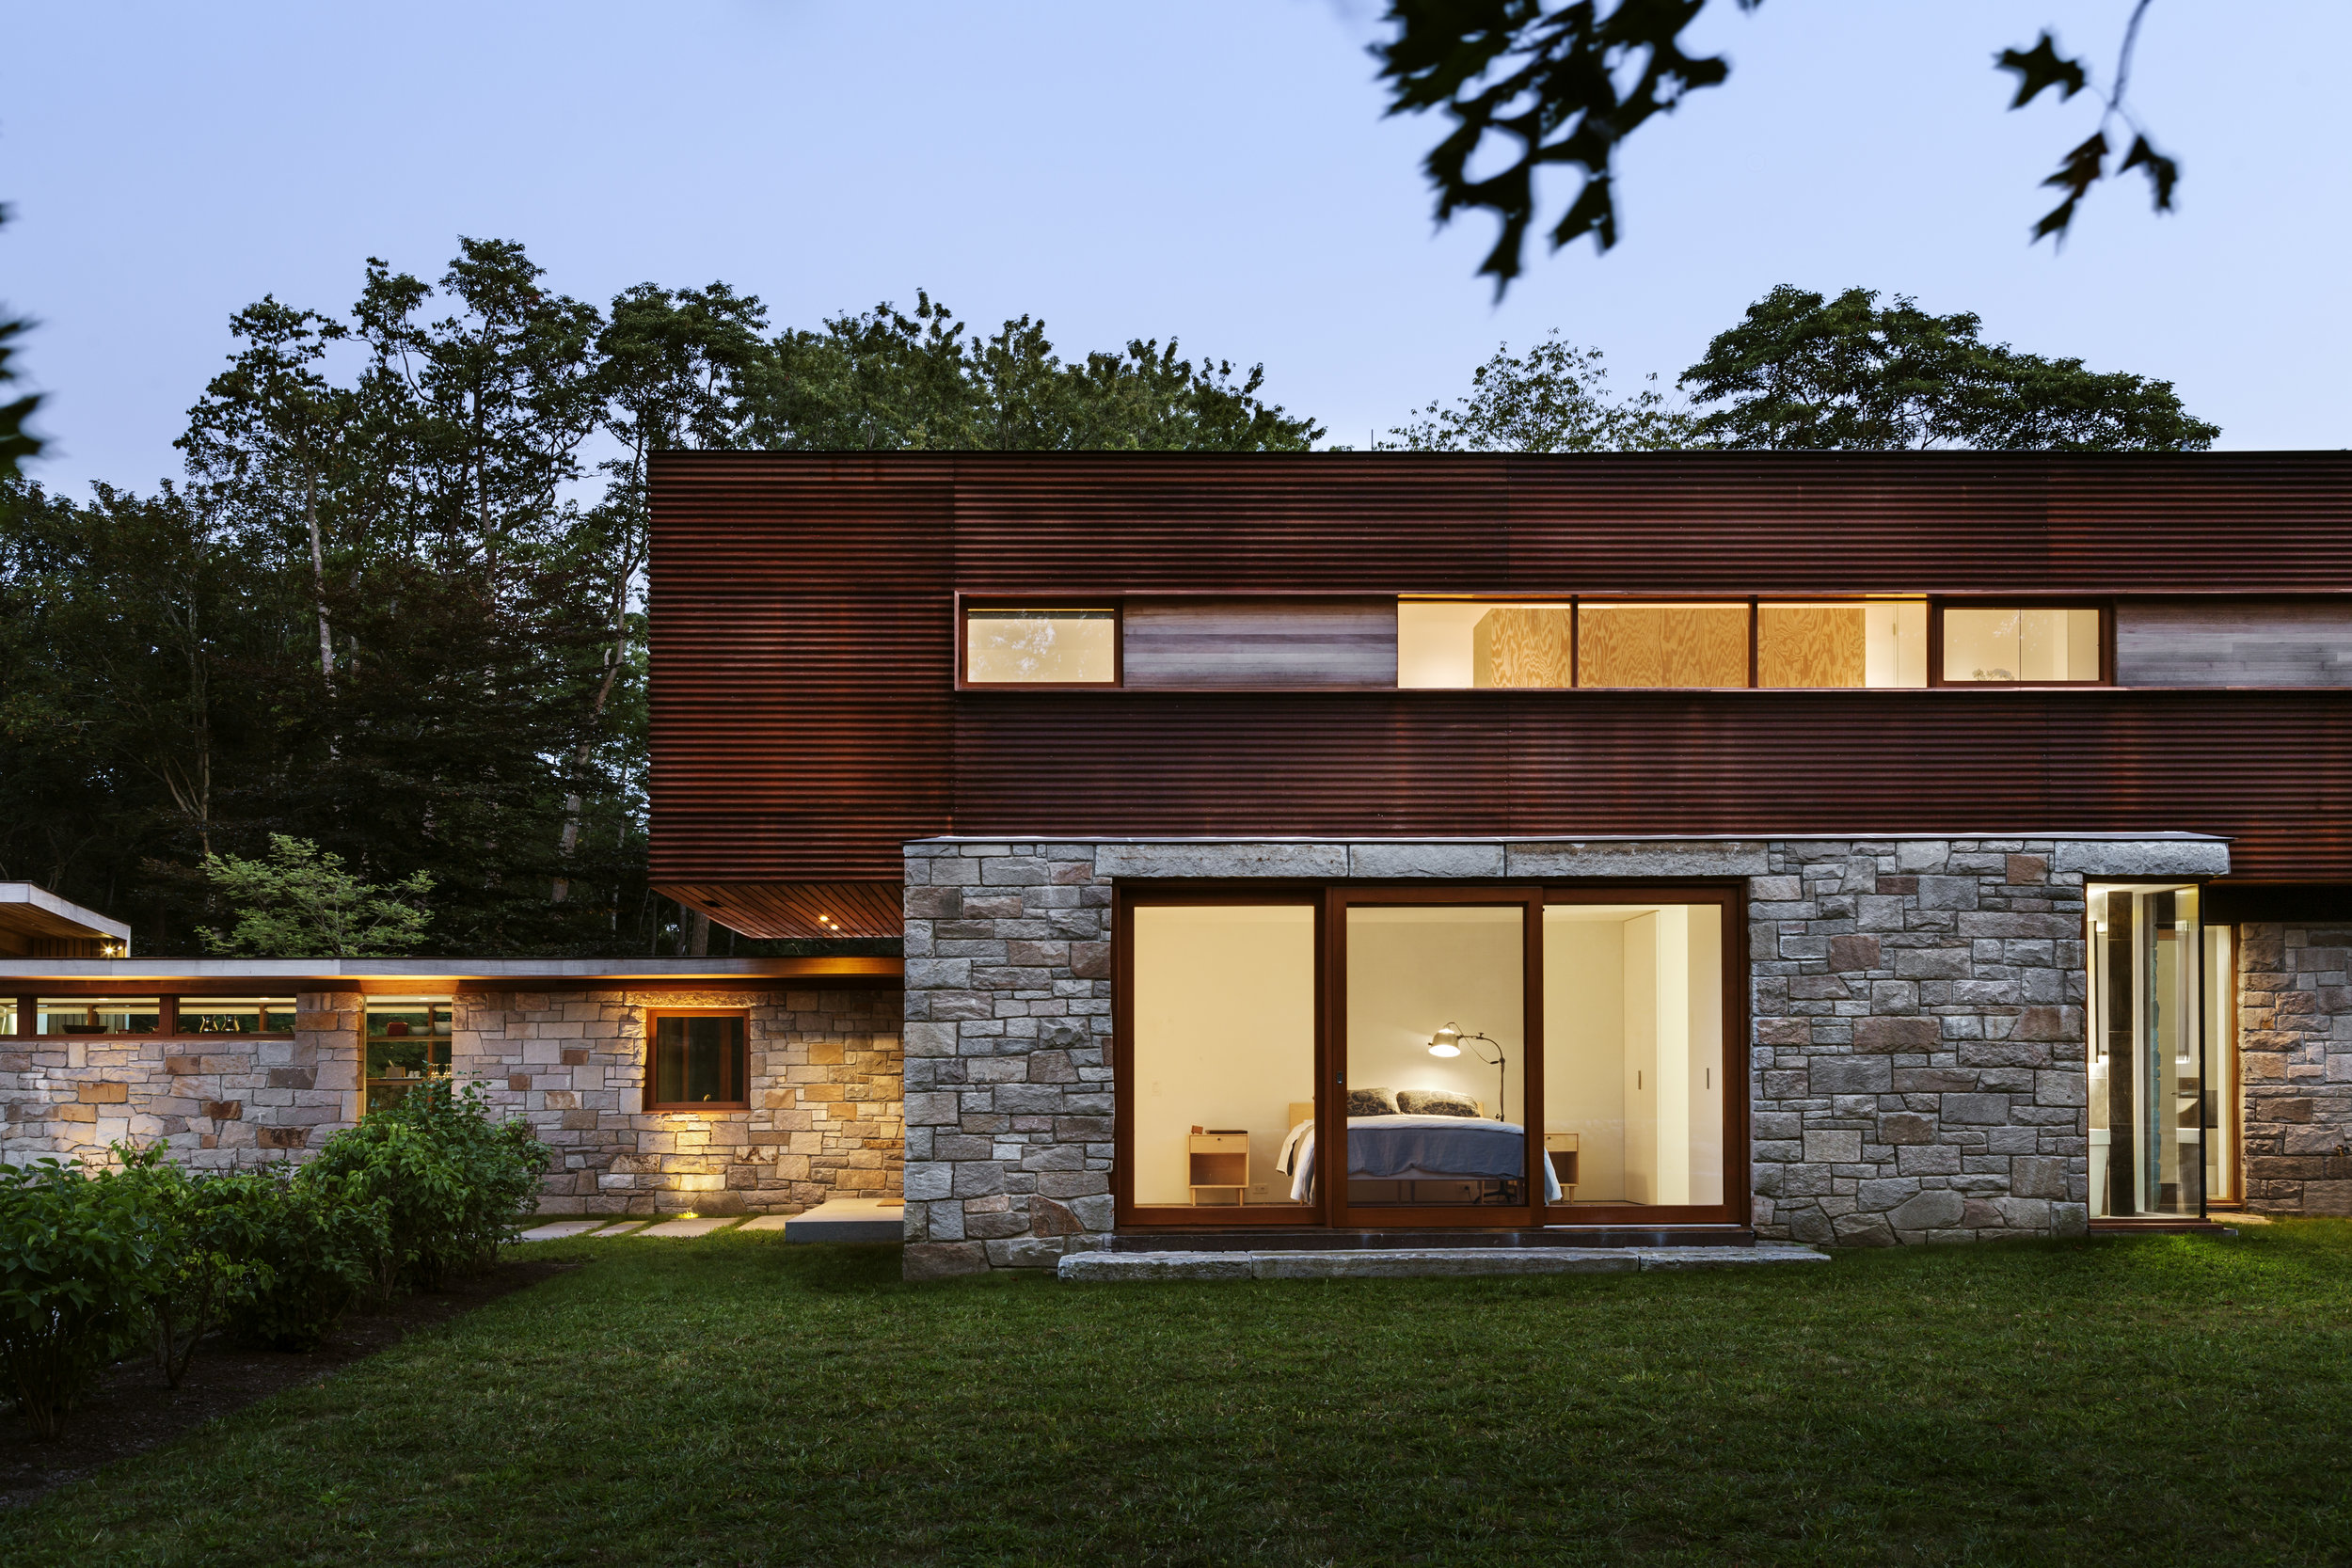 large glass windows with stone veneer and wood architecture